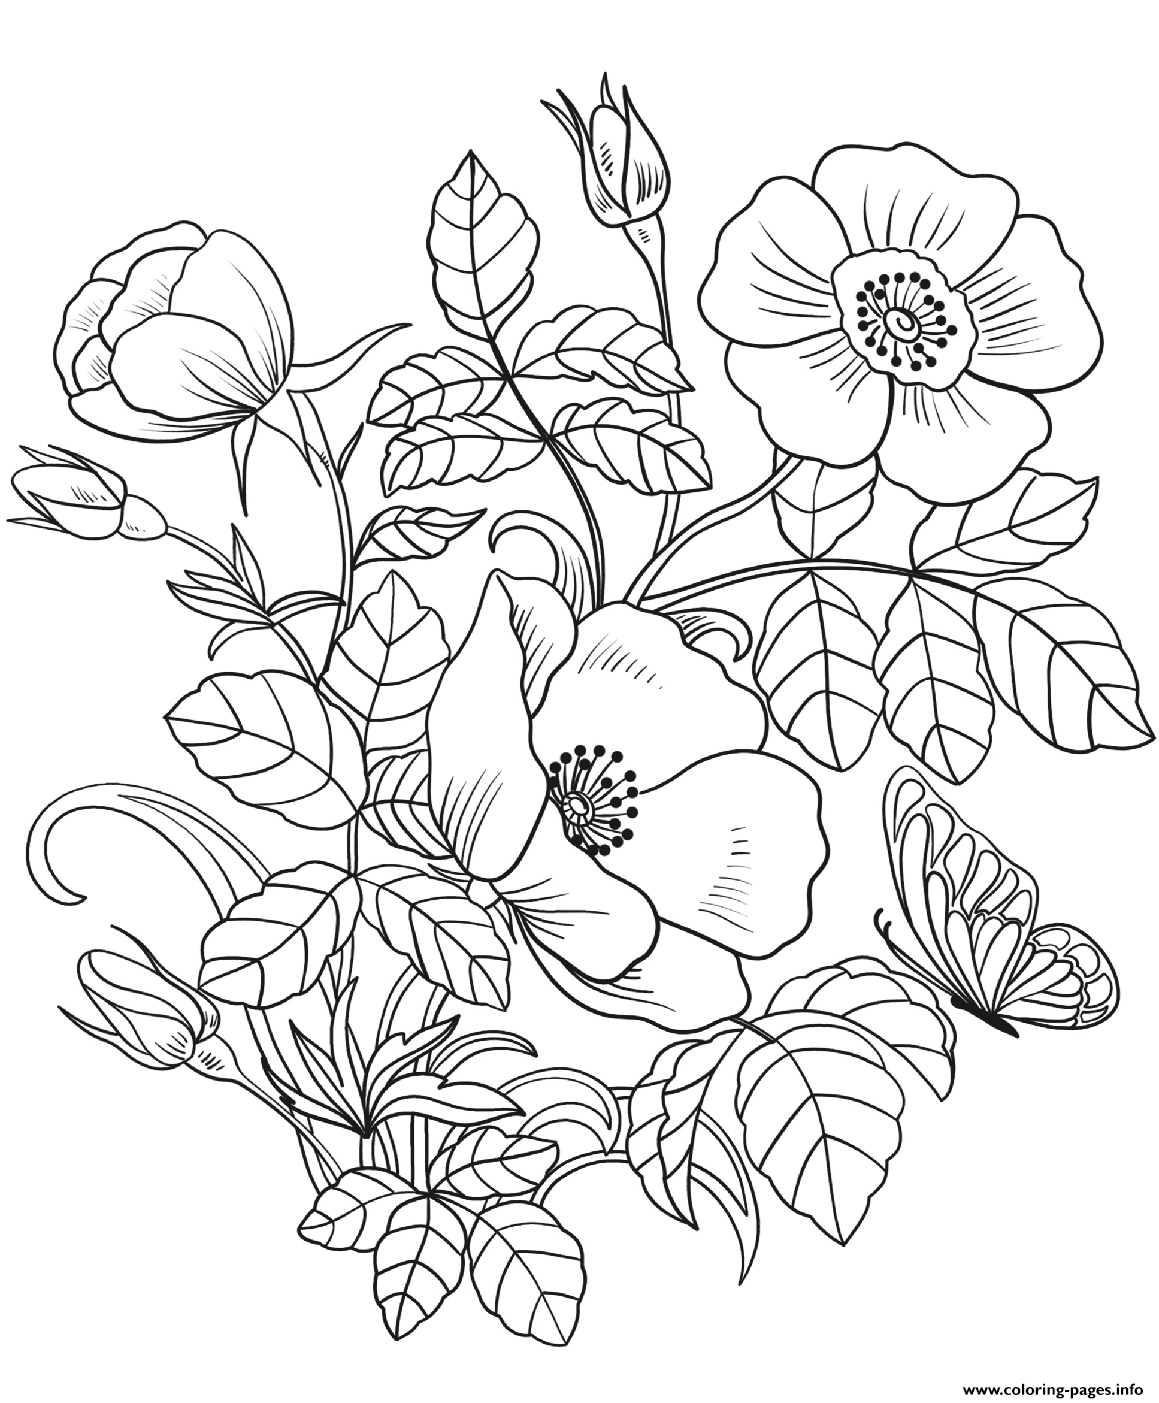 flowers you can print and color spring flowers coloring pages printable and print can flowers color you